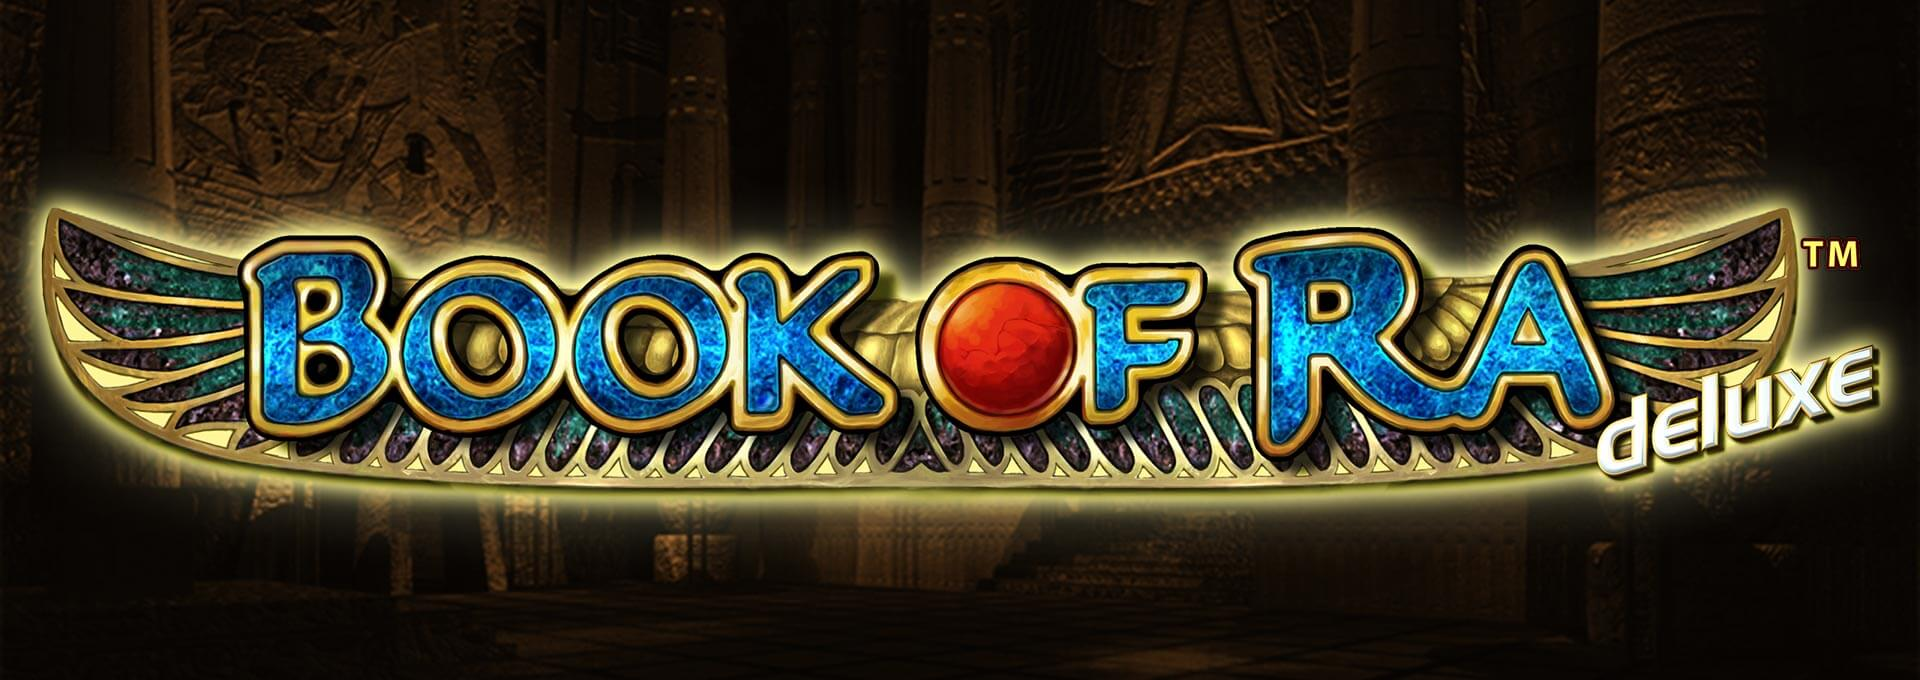 online casino book of ra online casino slot